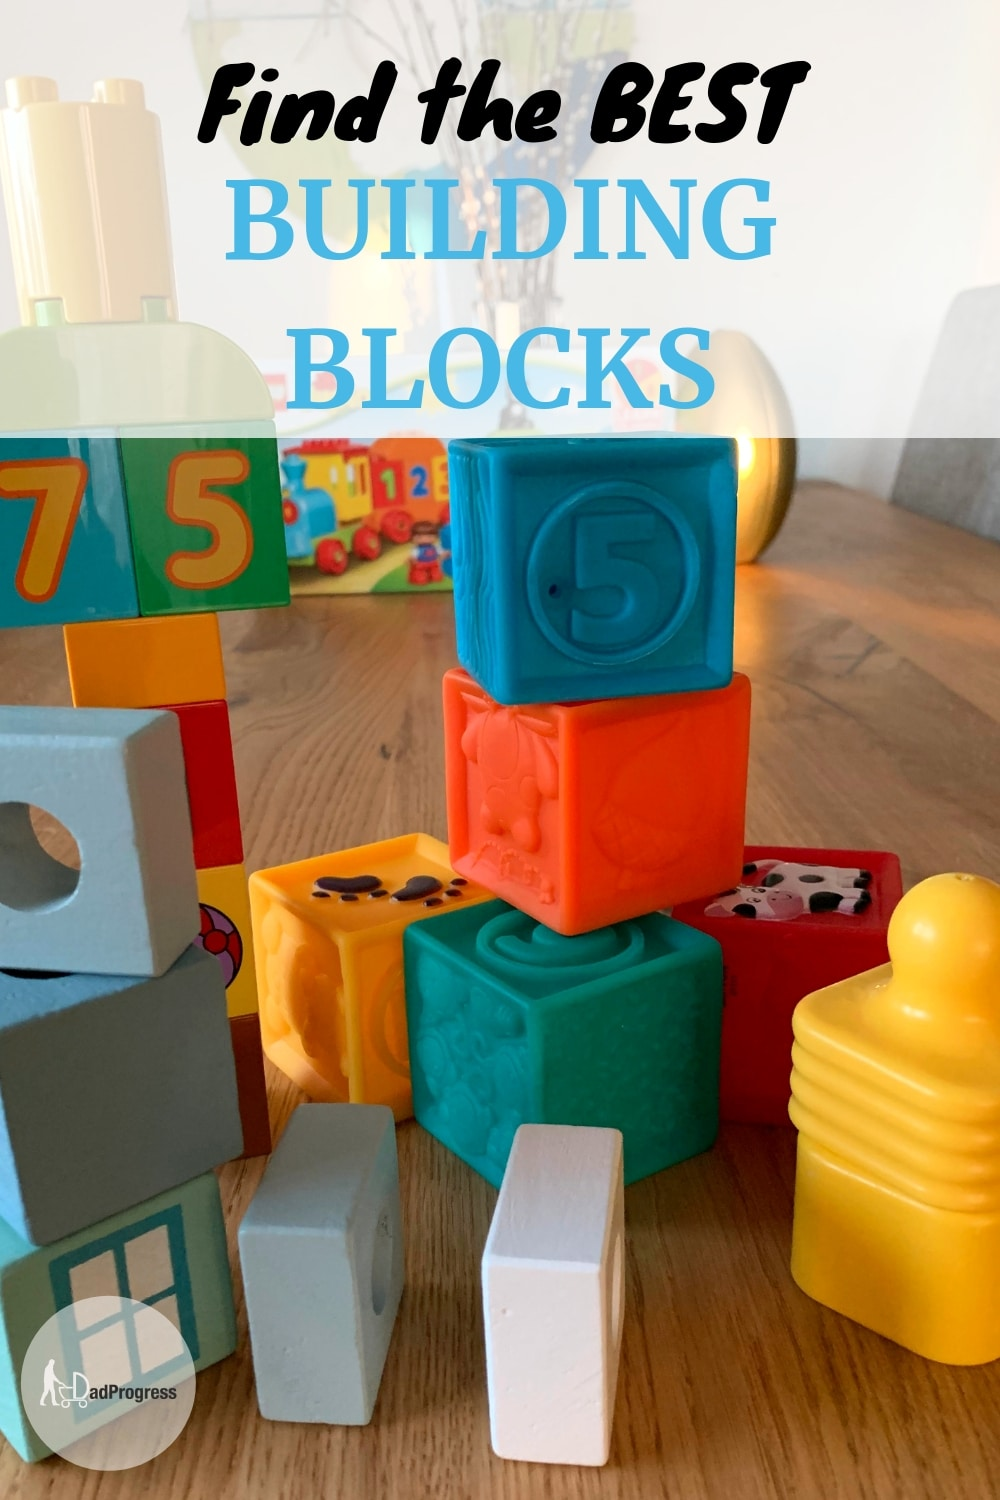 Building blocks are perfect for kids to design castles, houses and get creative ideas. They are also great learning toys for toddlers and babies alike. If you're searching for gift ideas, then check out my buying guide with some suggestions